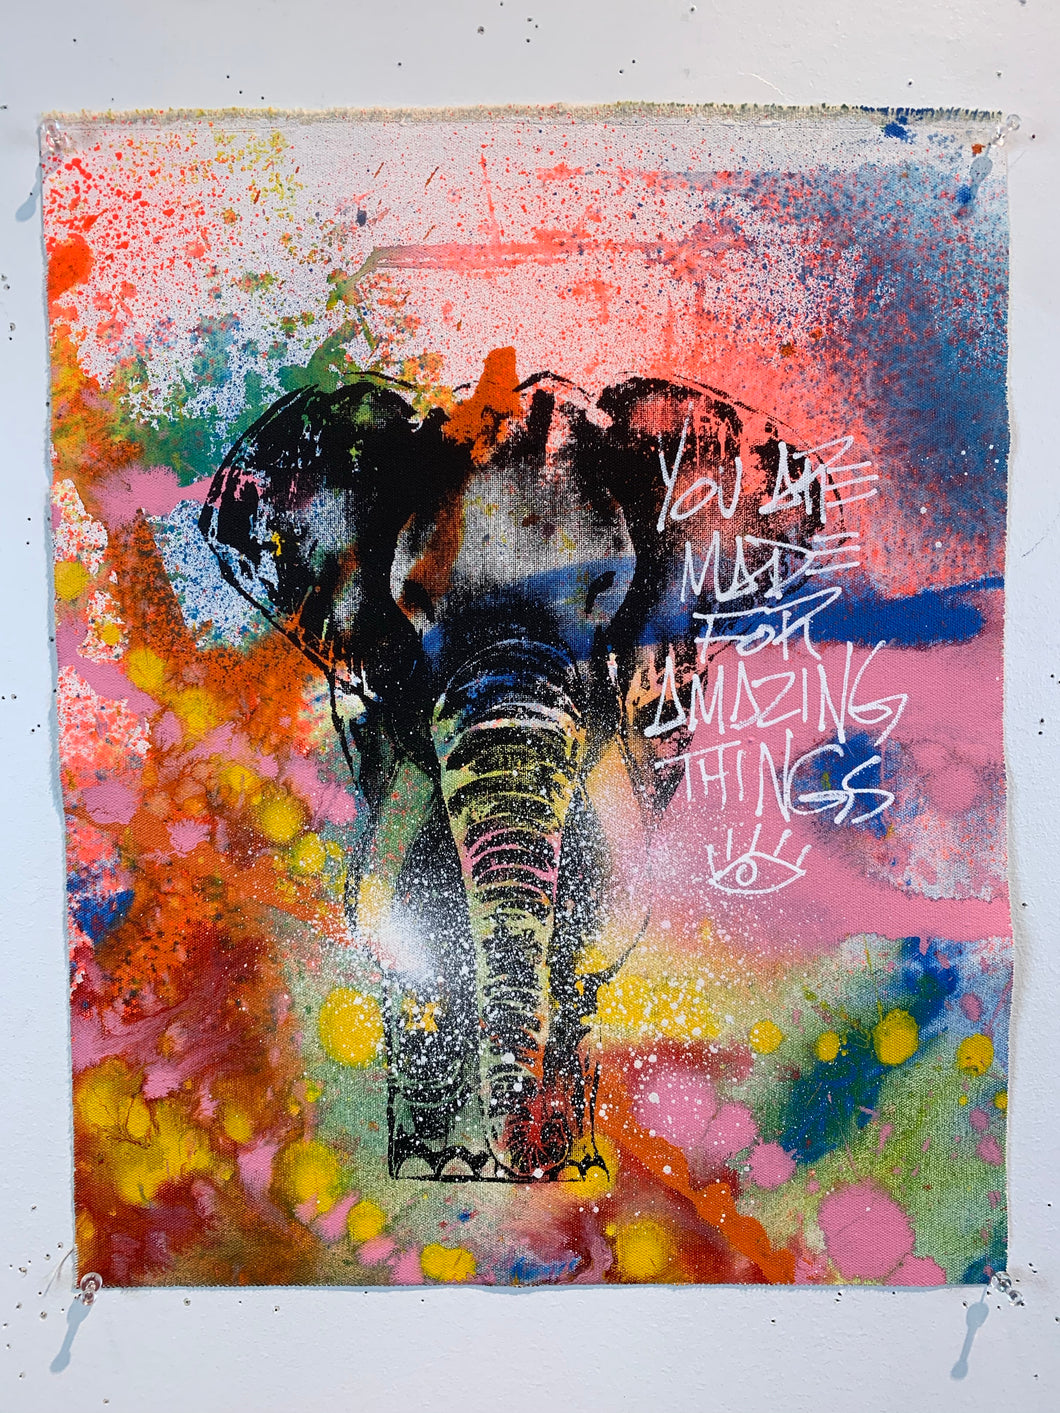 Signature Elephant #7/Amazing Things/2021